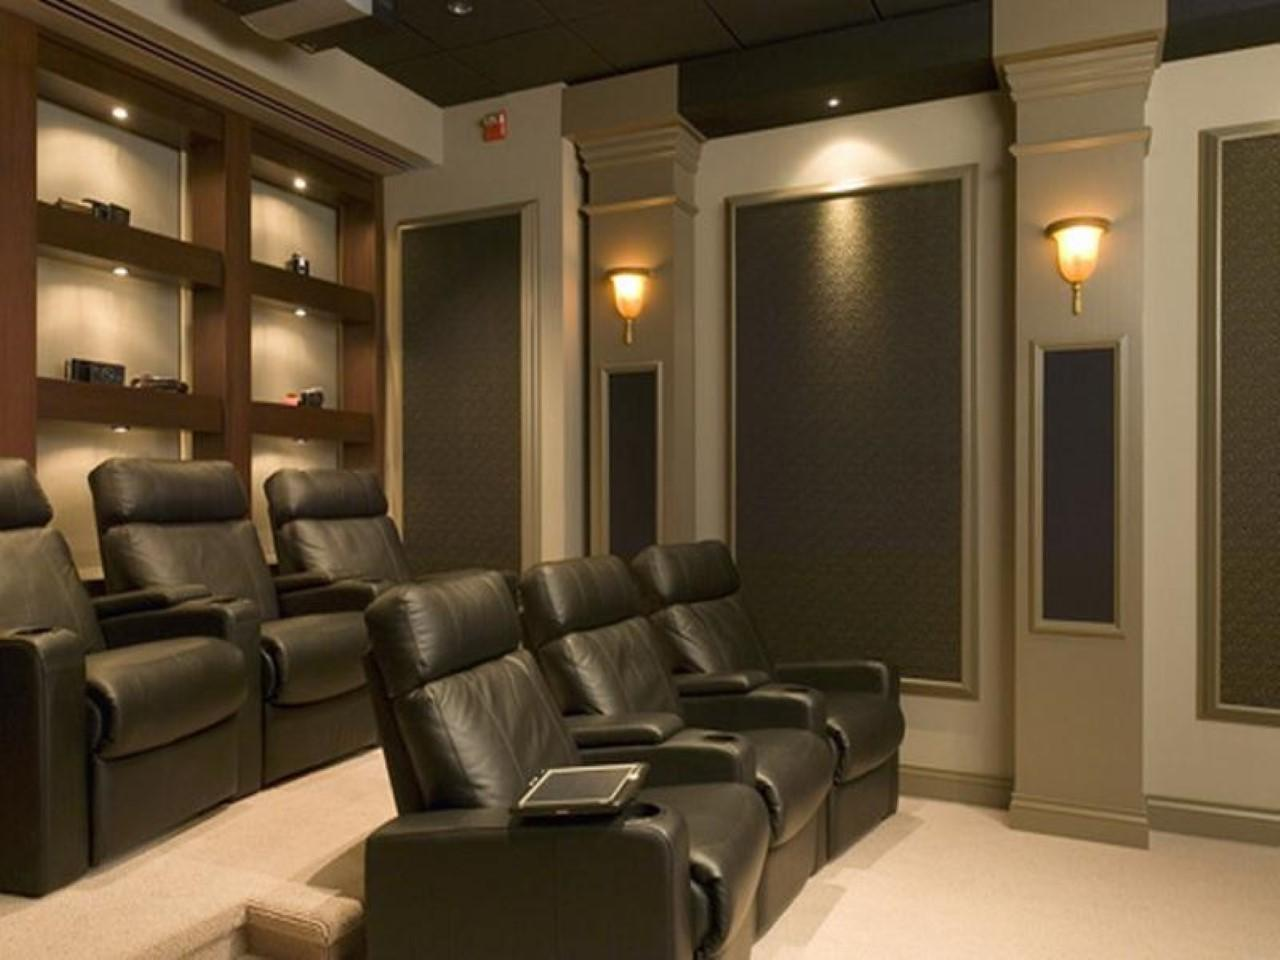 Mind Blowing Comfy Home Theater Seating Ideas That Abound With Simplicity Elegance Incredible Pictures Decoratorist